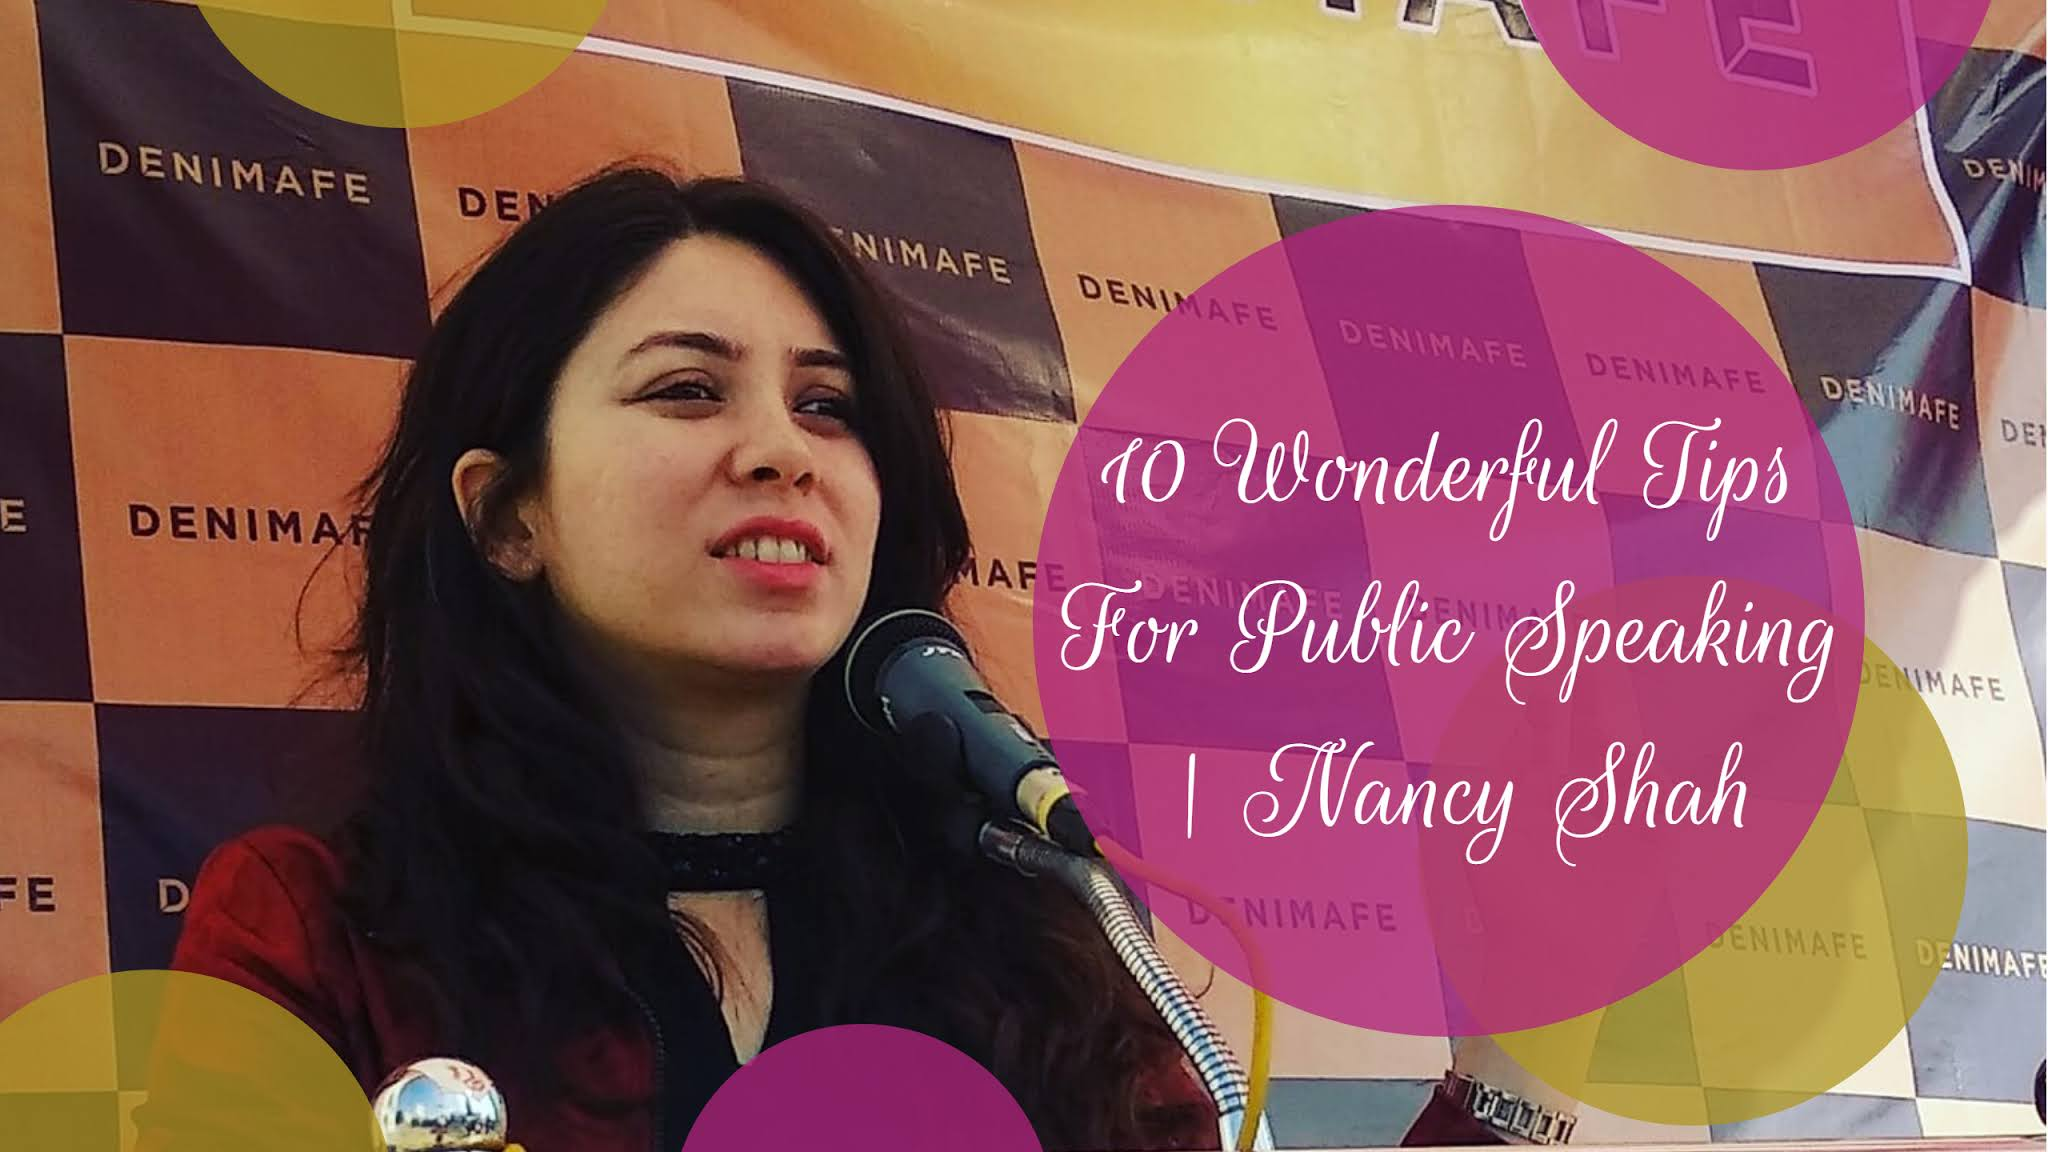 10 Wonderful Tips For Public Speaking   Nancy Shah, contracts and freelance